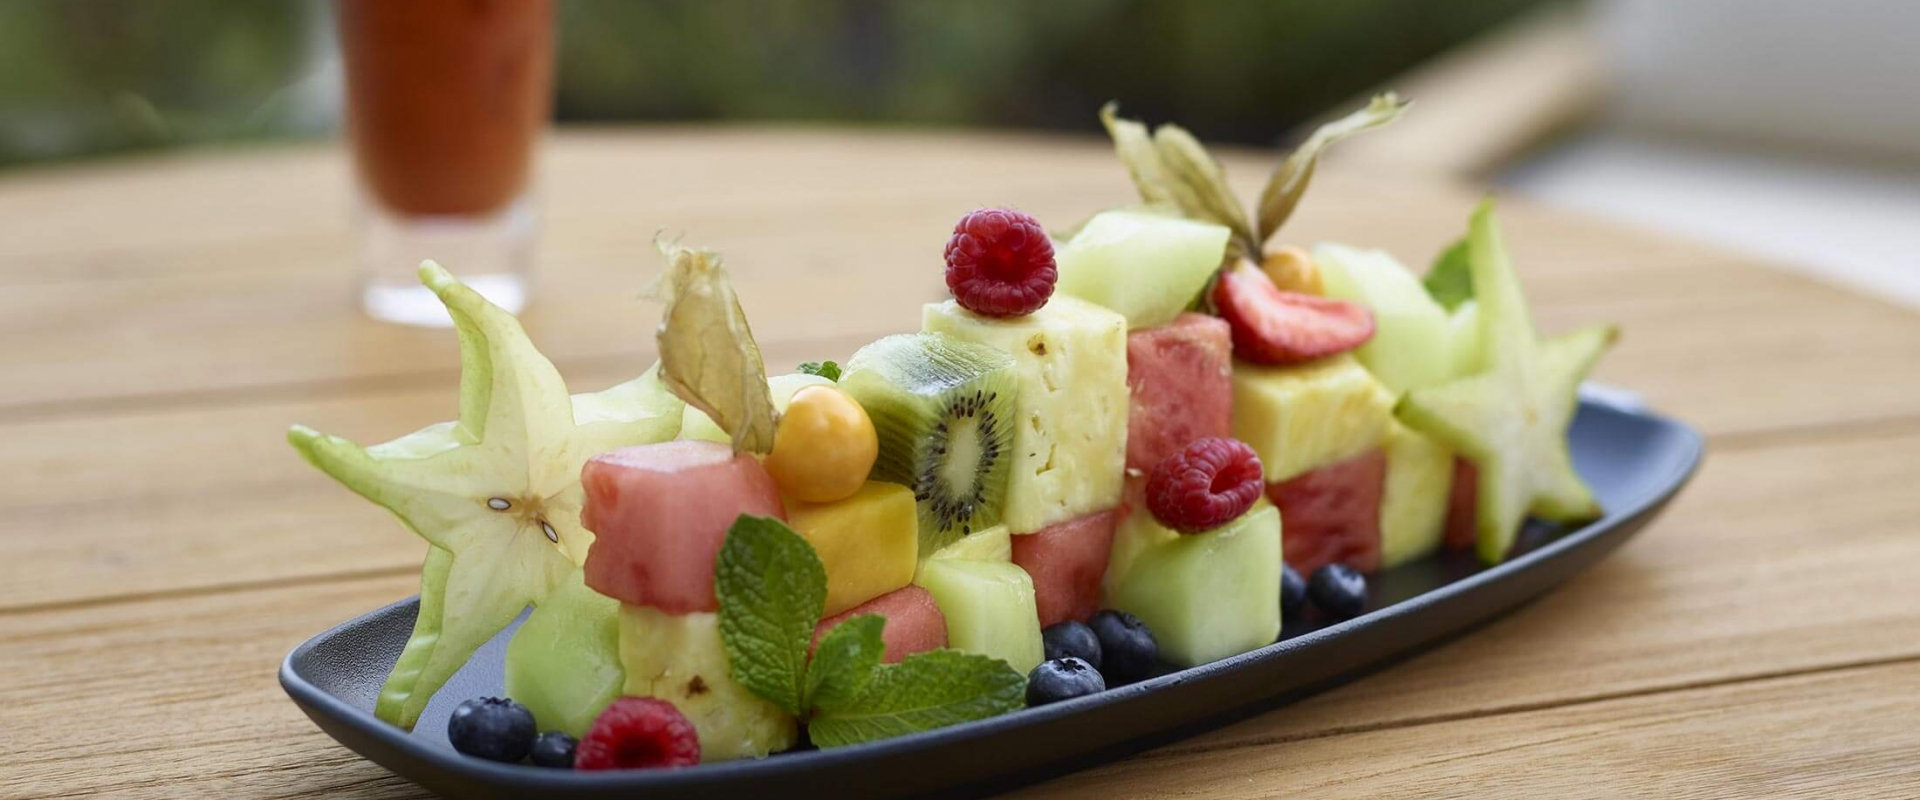 Beautifully presented fruit plate from D/6